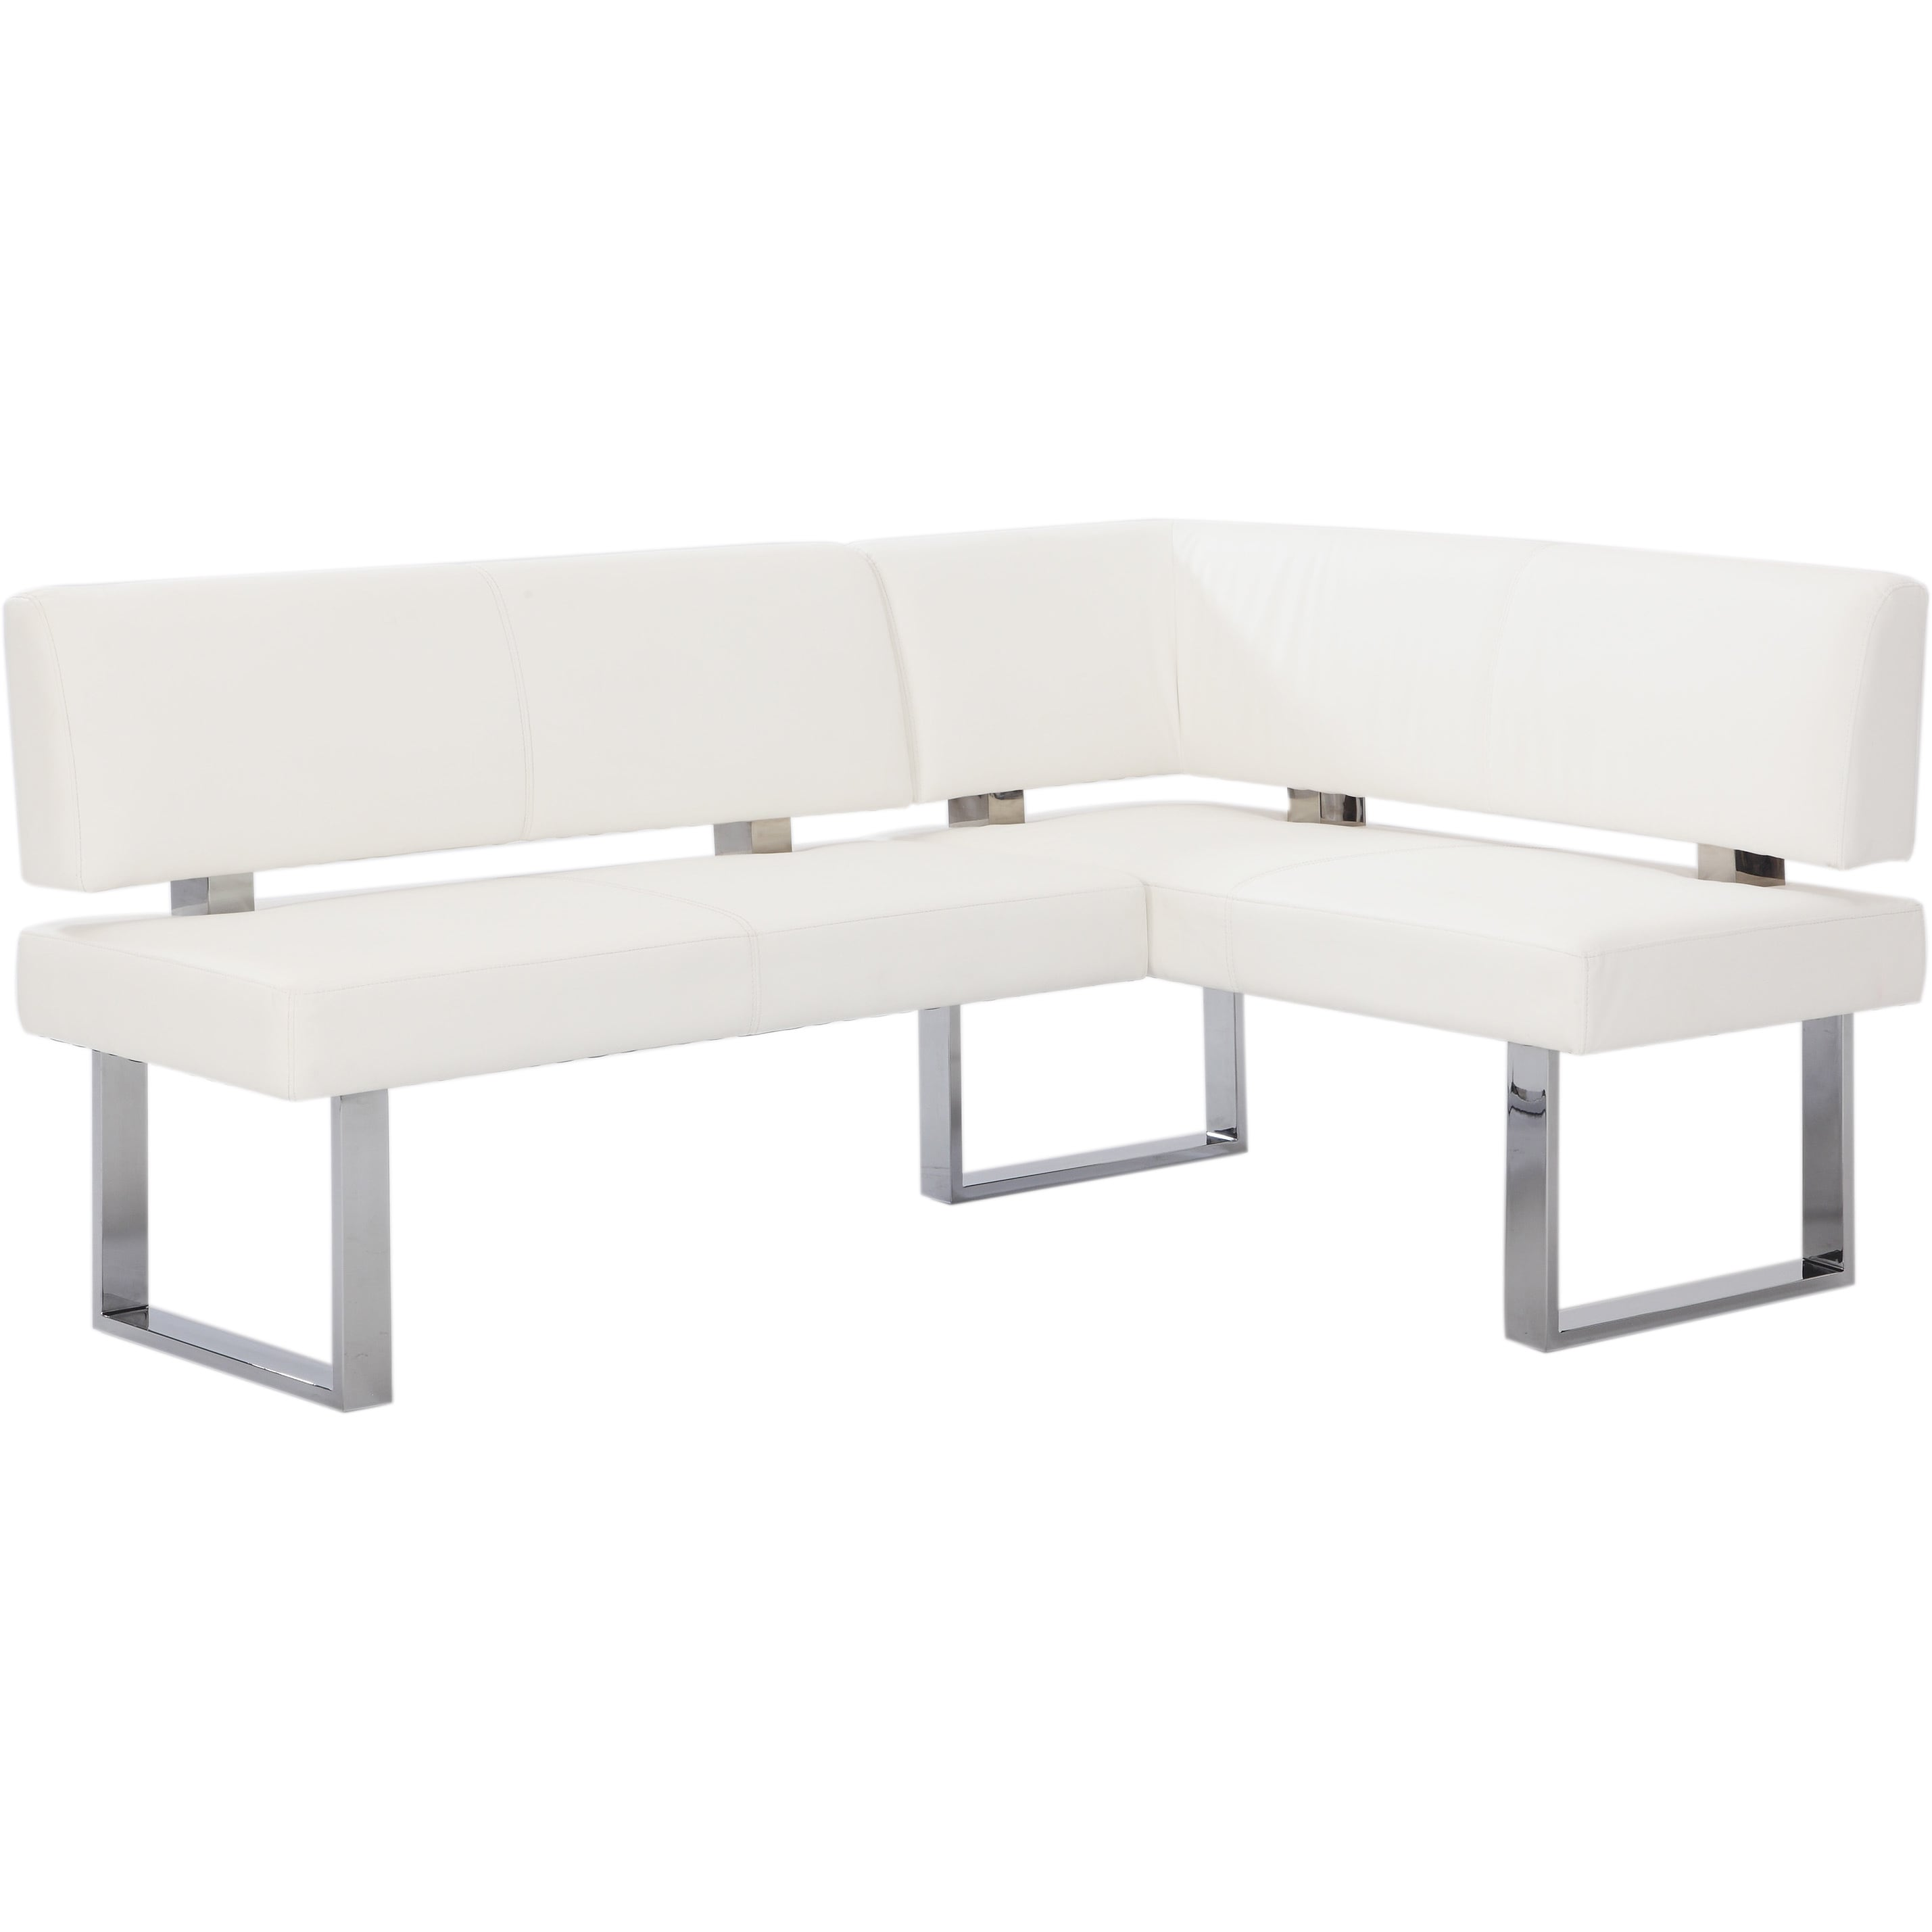 Christopher Knight Home Leah White Nook Corner Dining Bench - Free Shipping  Today - Overstock.com - 17226906